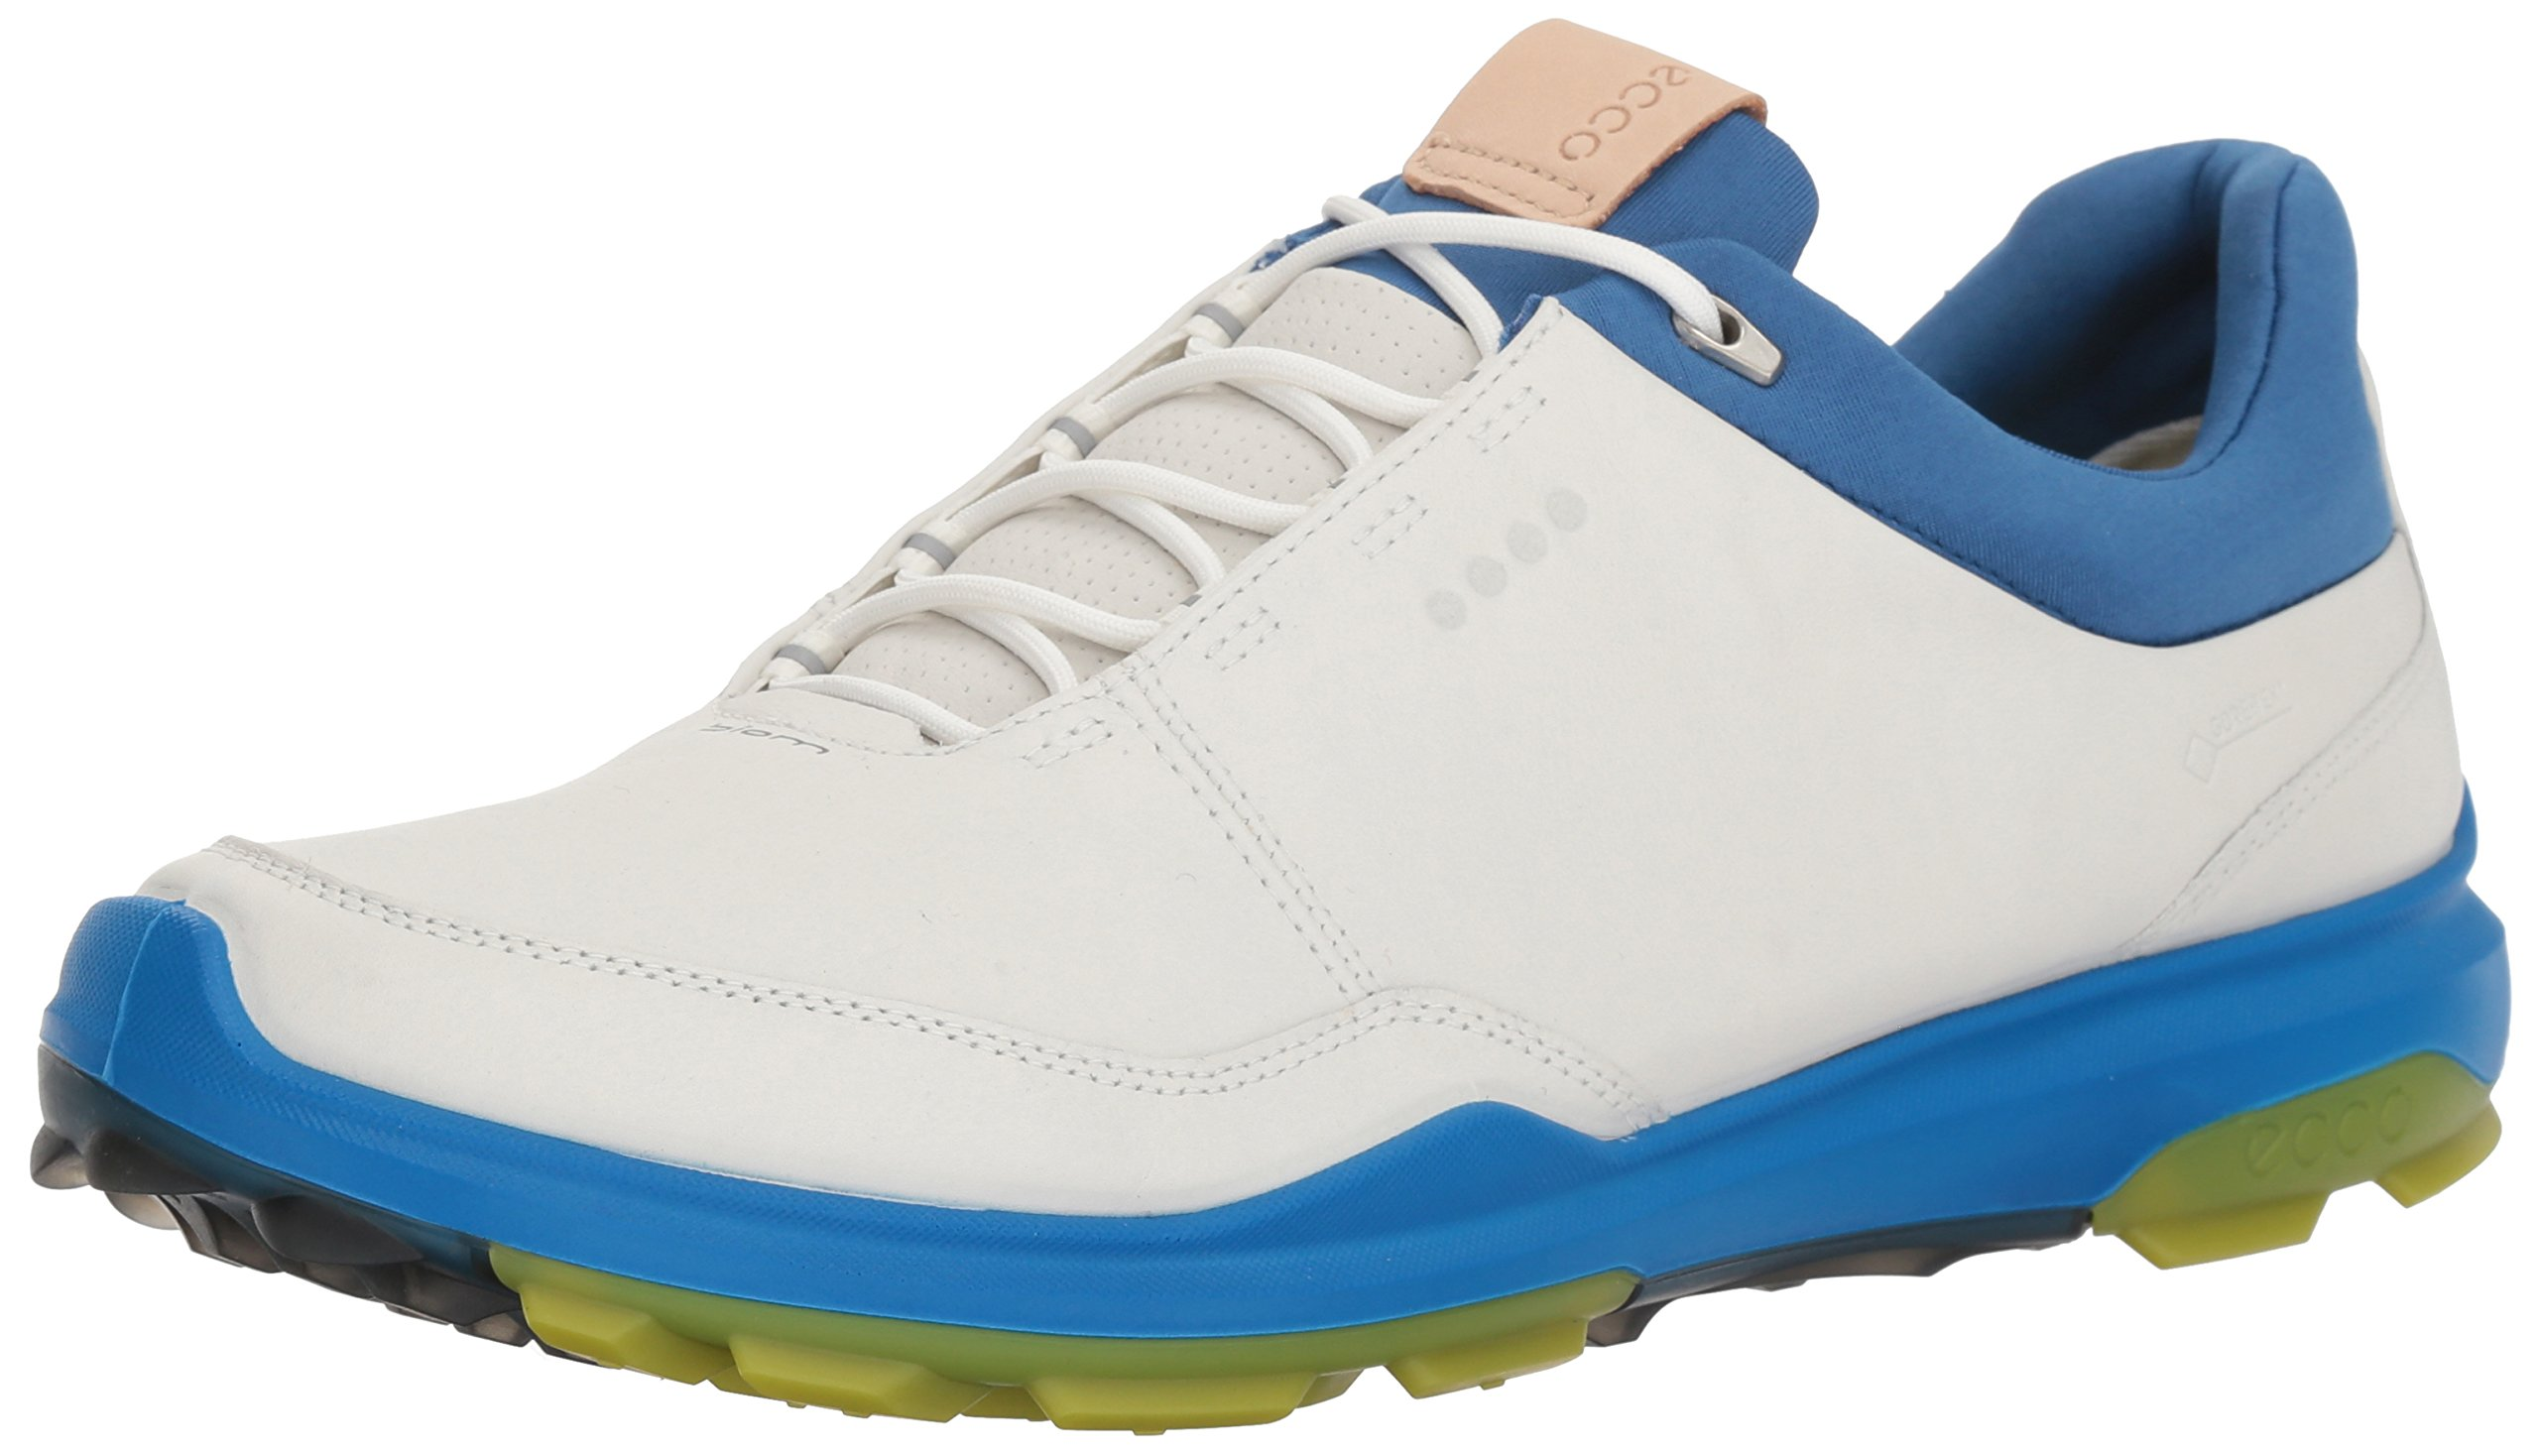 ECCO Men's Biom Hybrid 3 Gore-Tex Golf Shoe, White/Kiwi, 39 M EU (5-5.5 US)